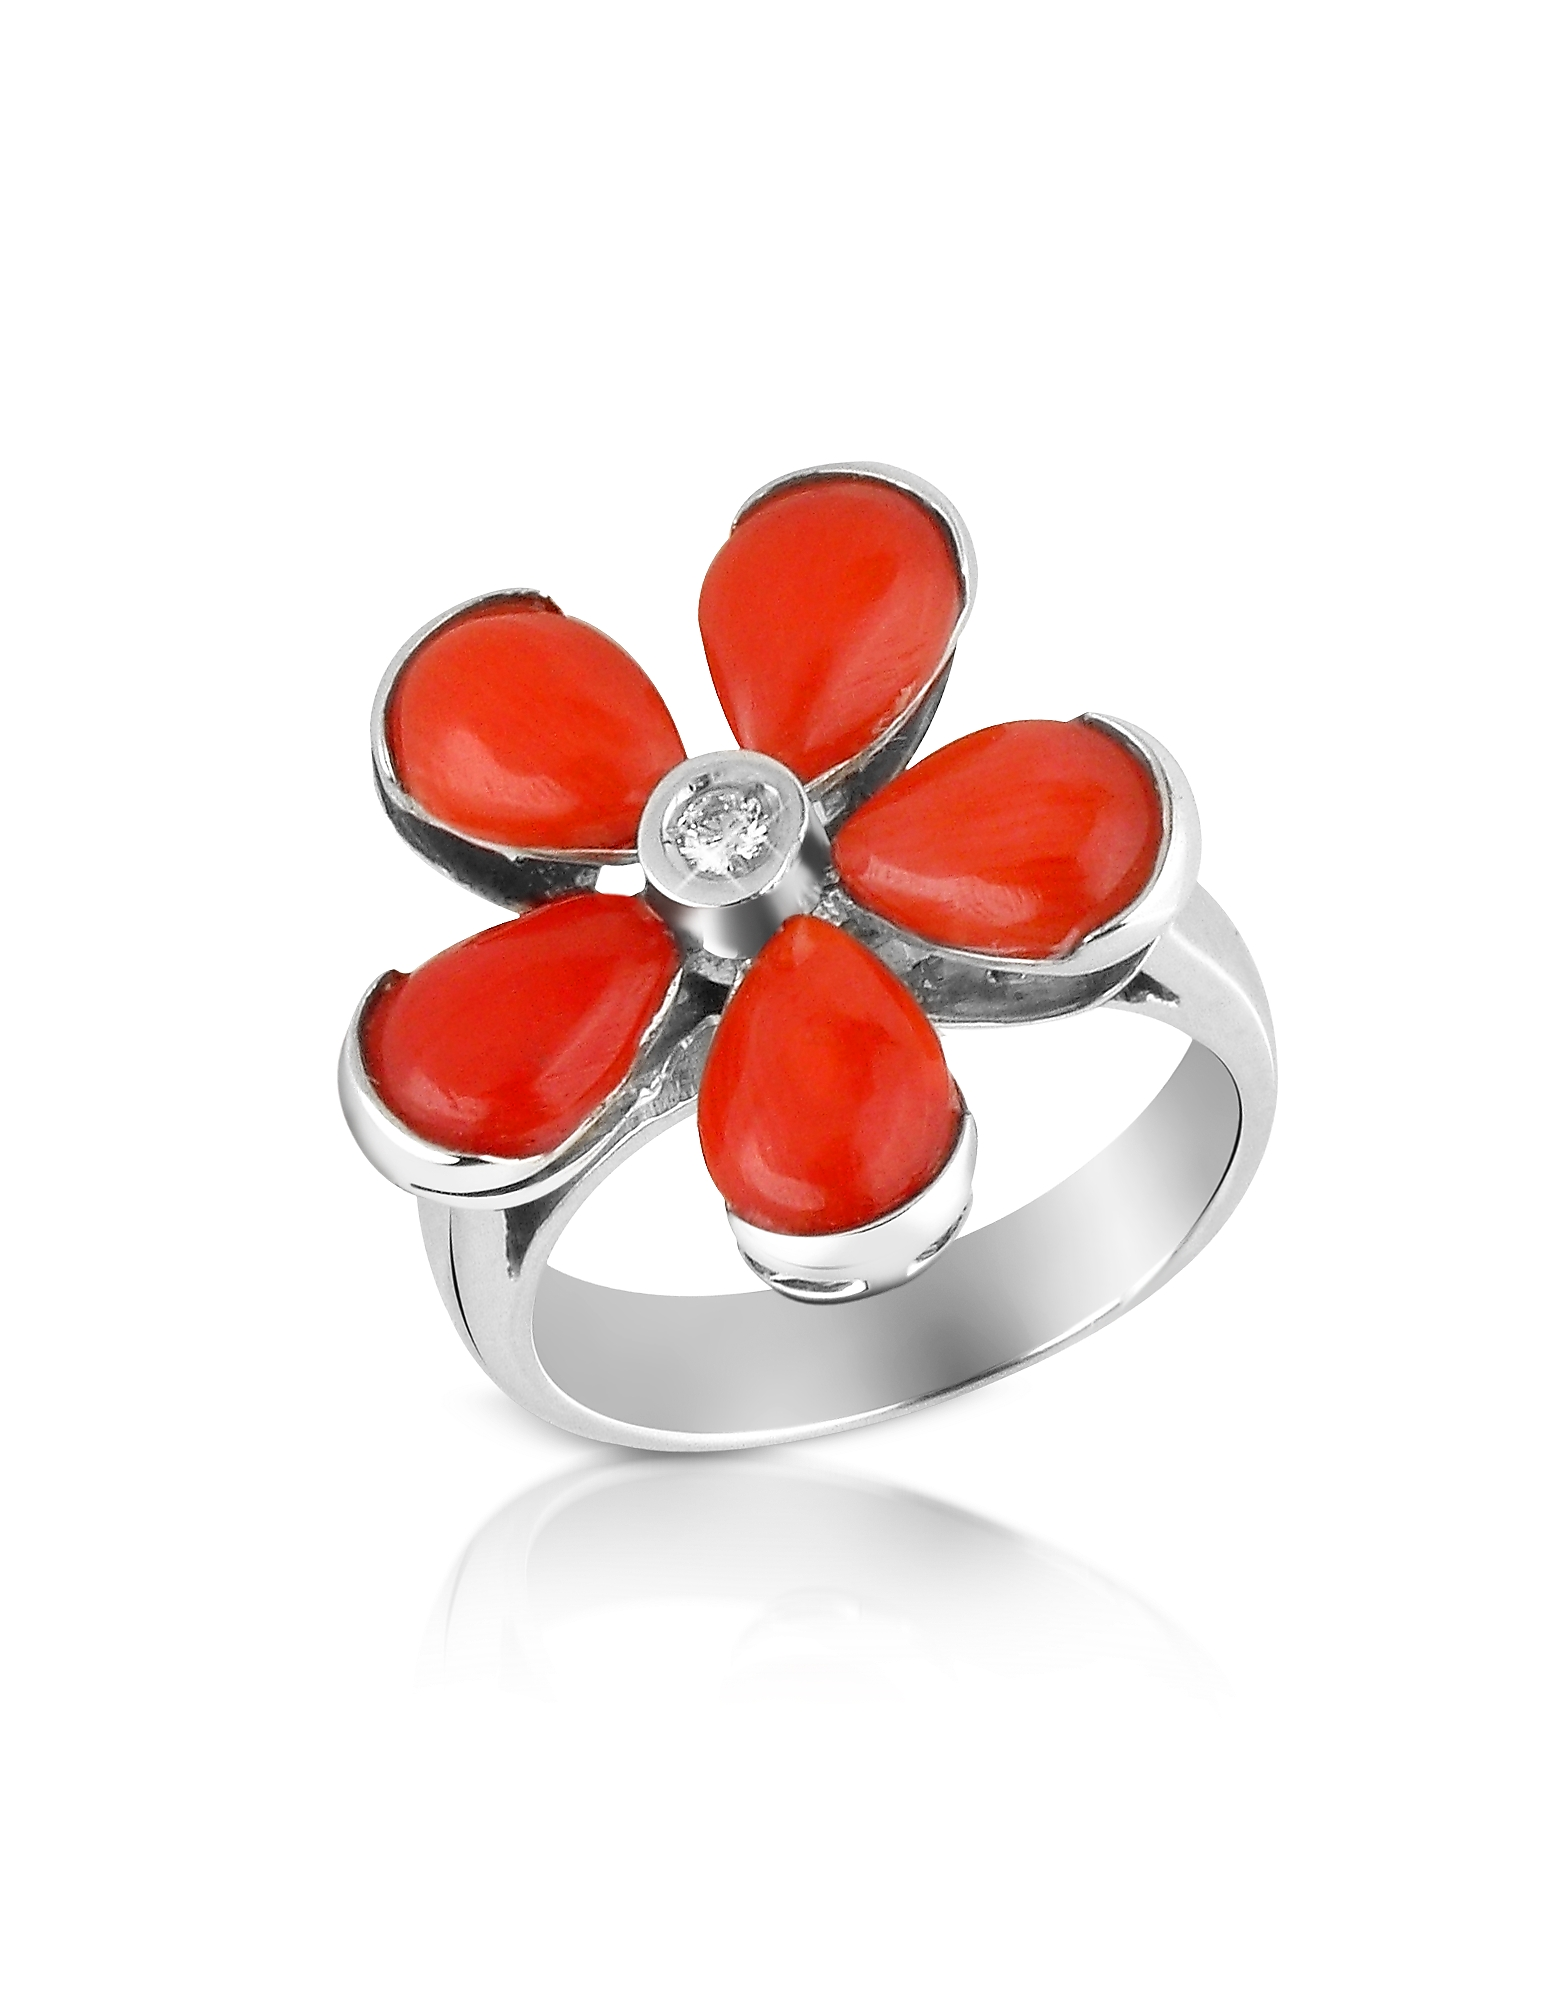 Del Gatto Rings, Diamond and Red Coral Flower 18K Gold Ring